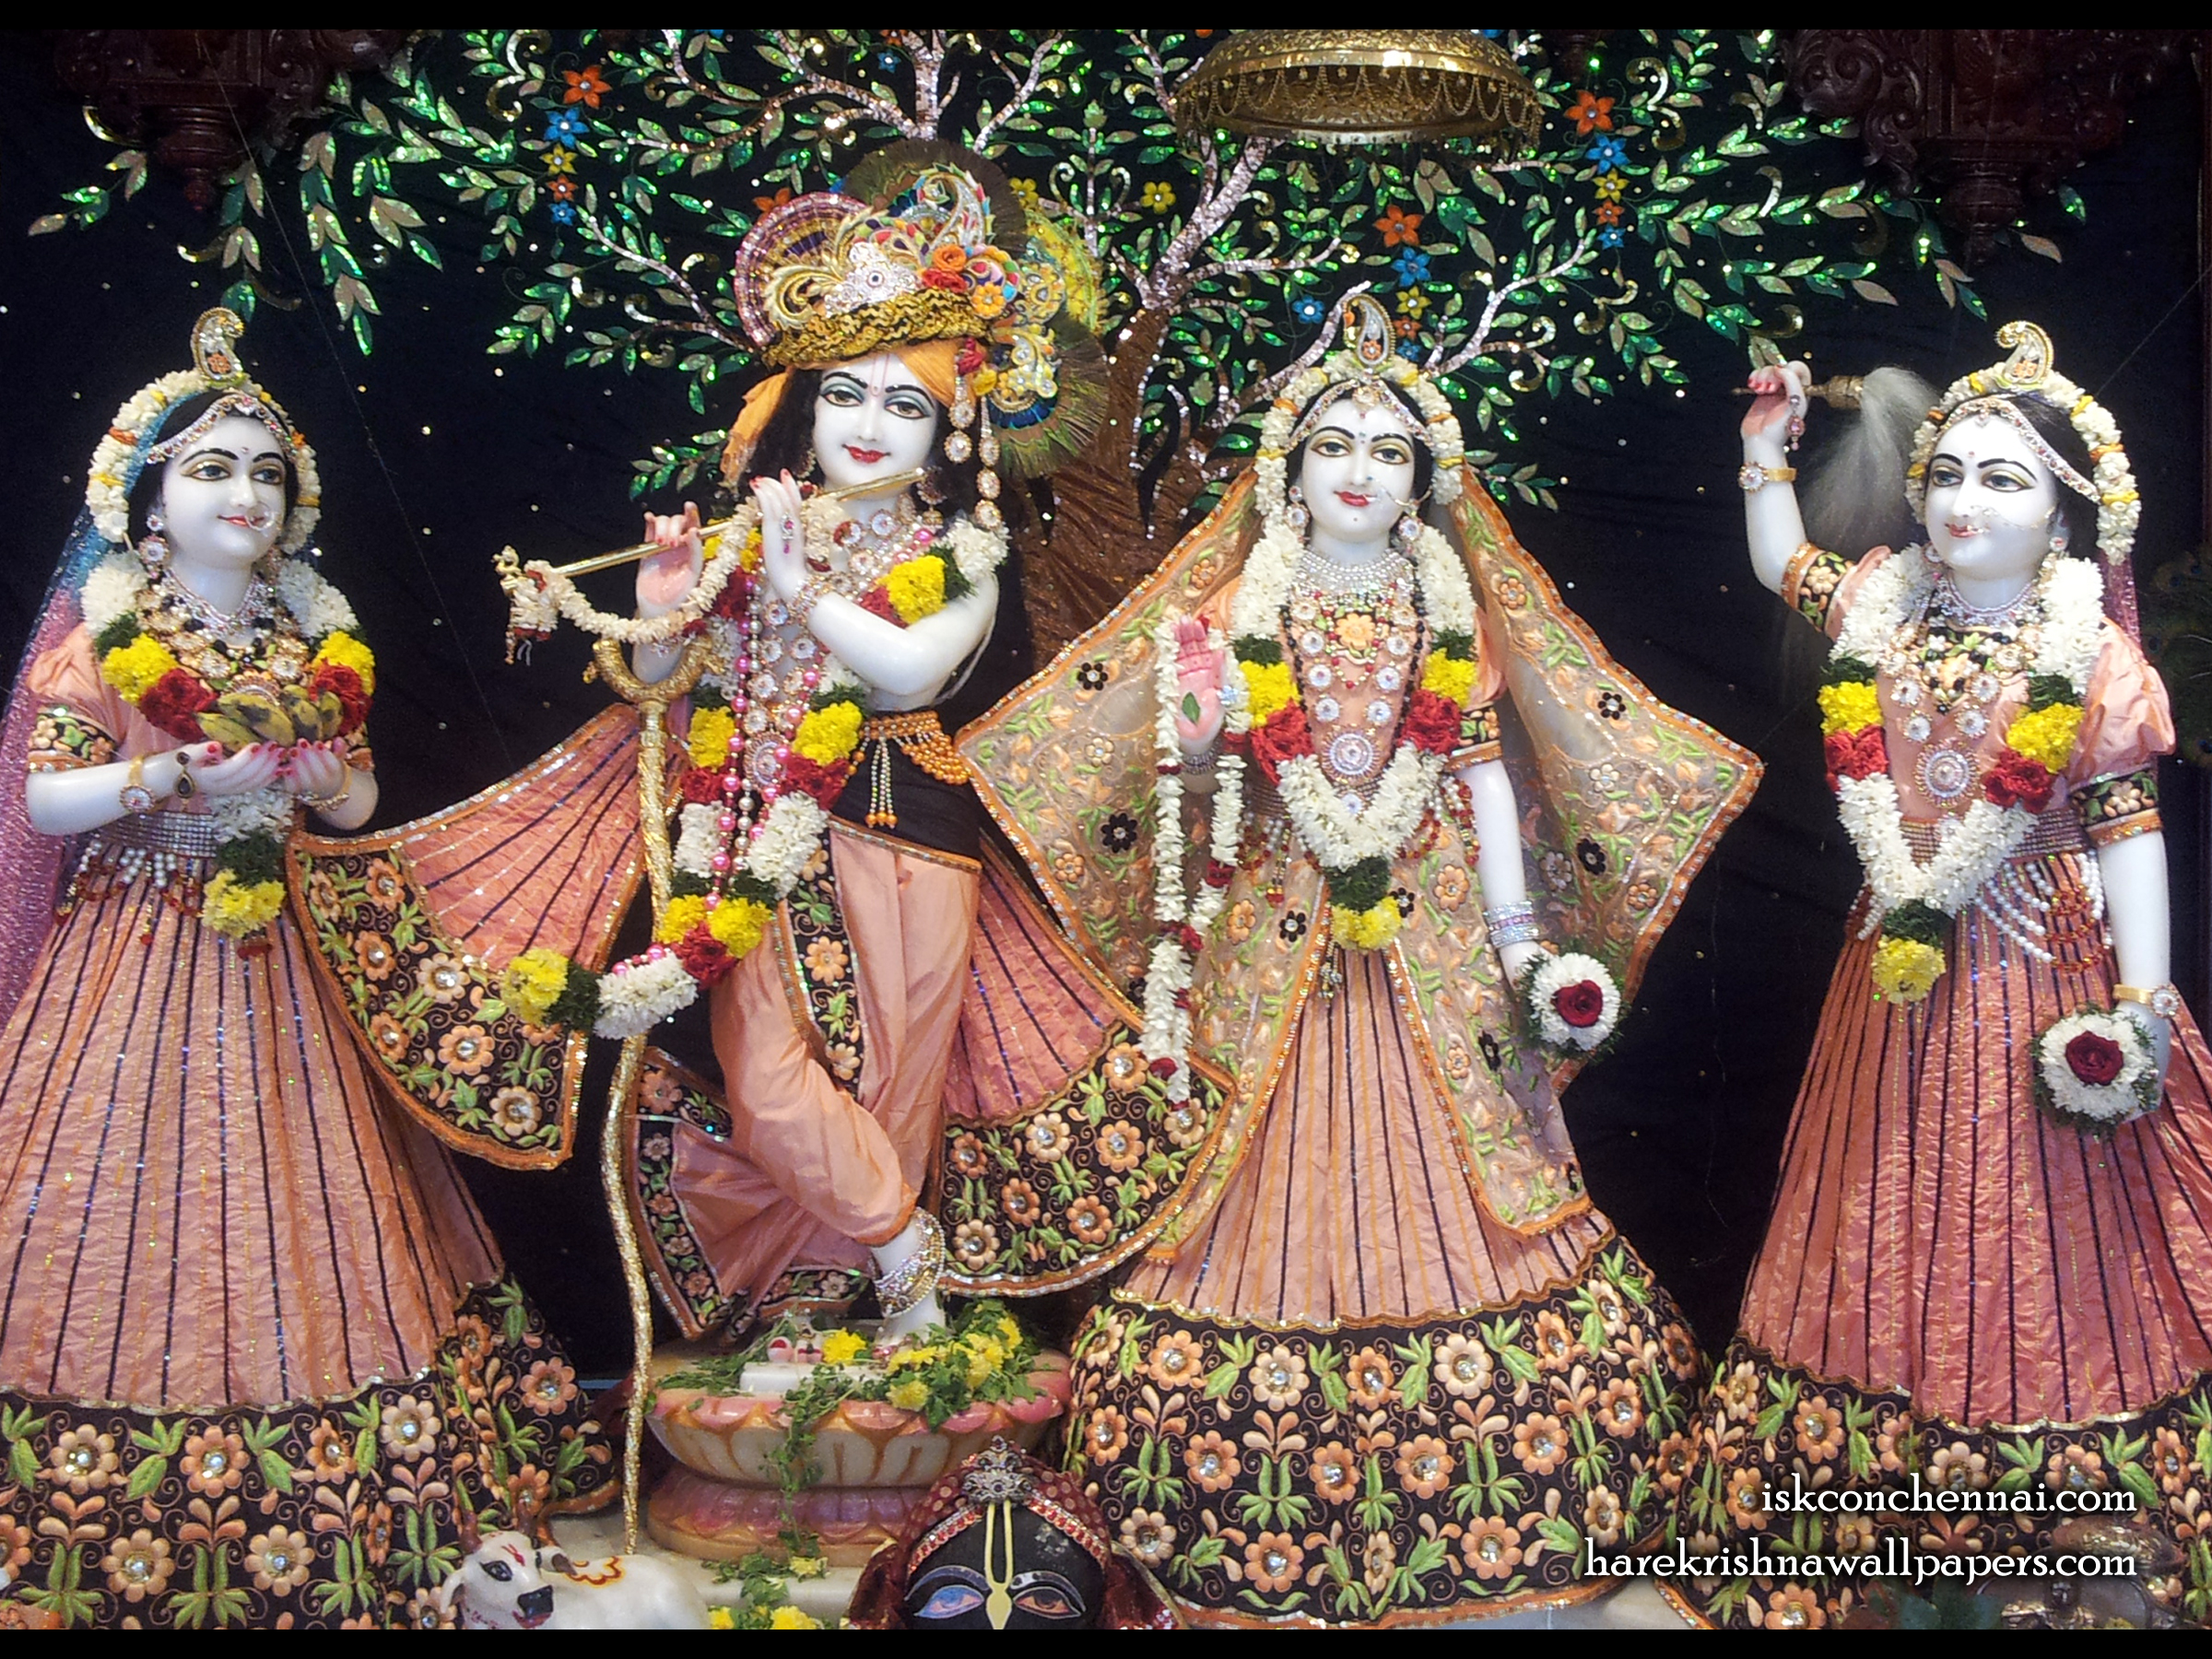 Sri Sri Radha Krishna Lalita Vishakha Wallpaper (004) Size 2400x1800 Download